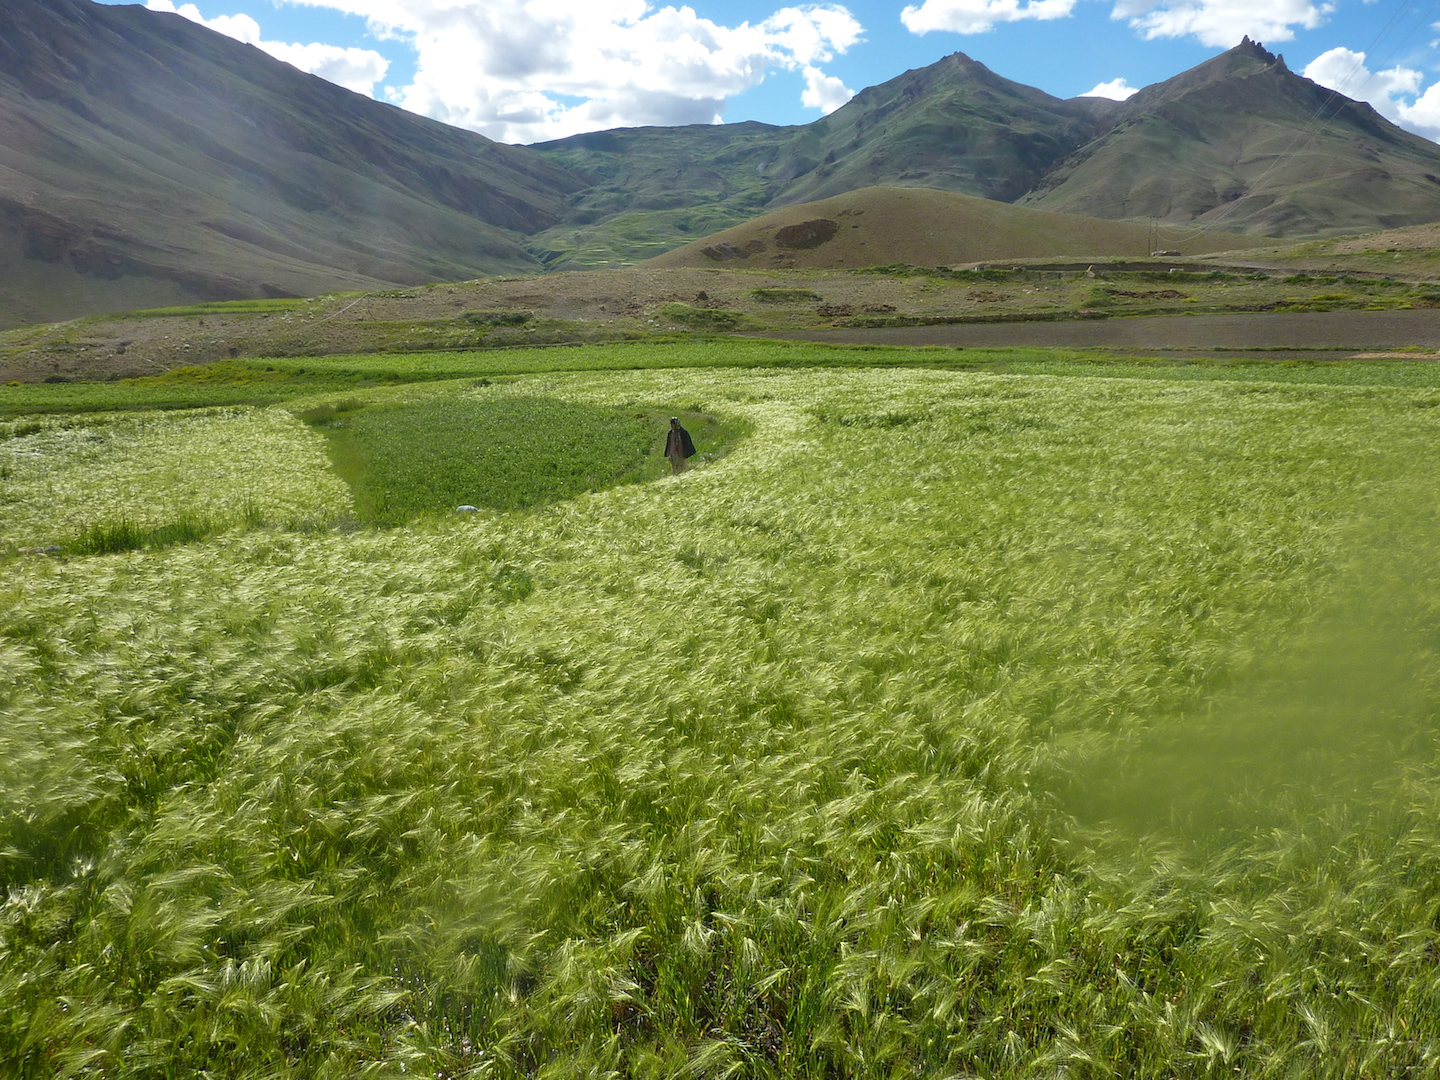 The barley fields in the beautiful village of Kibber in Spiti valley.